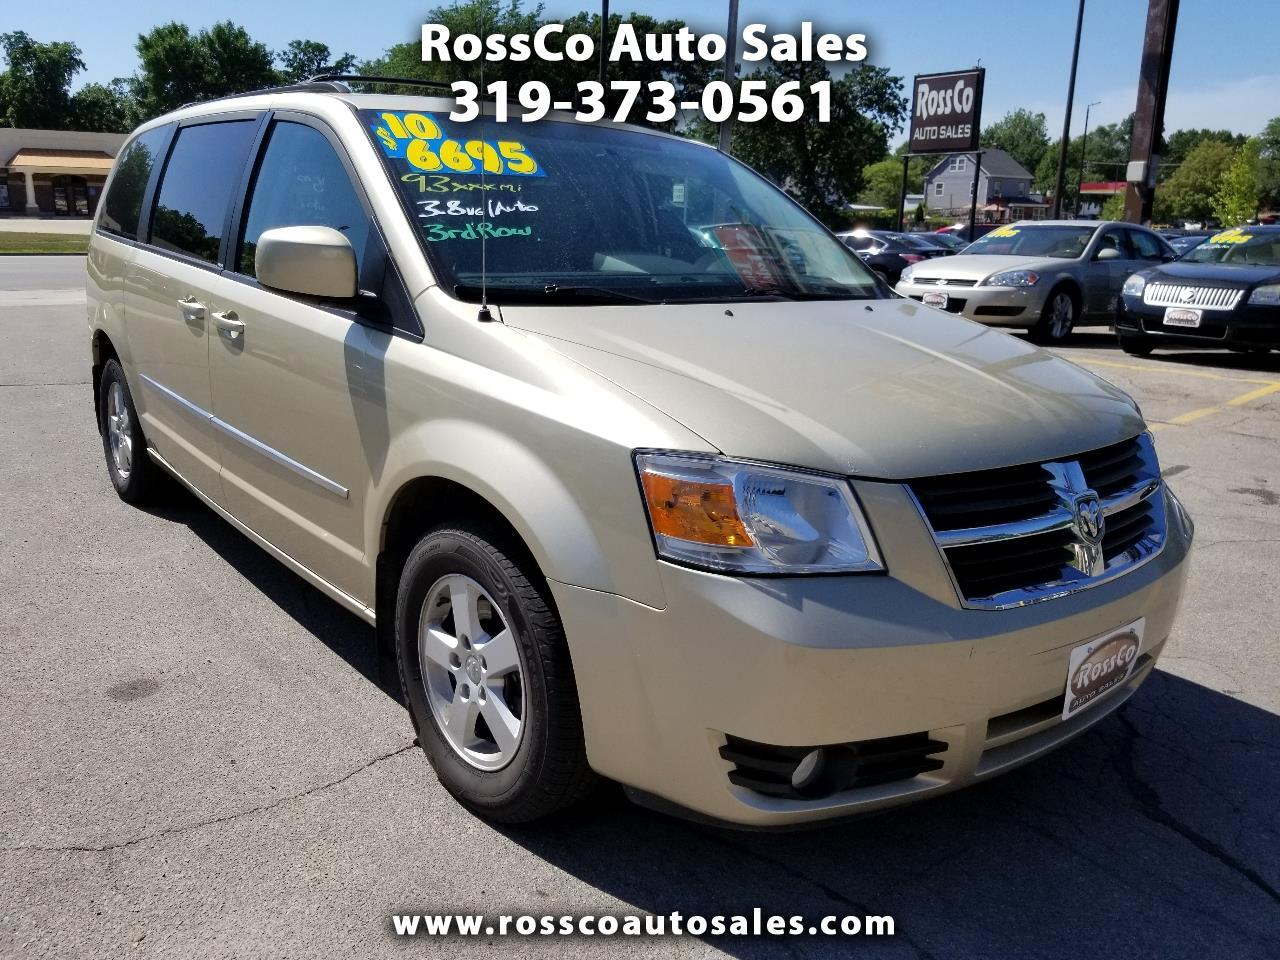 Used 2010 Dodge Grand Caravan for Sale in Cedar Rapids, IA 52402